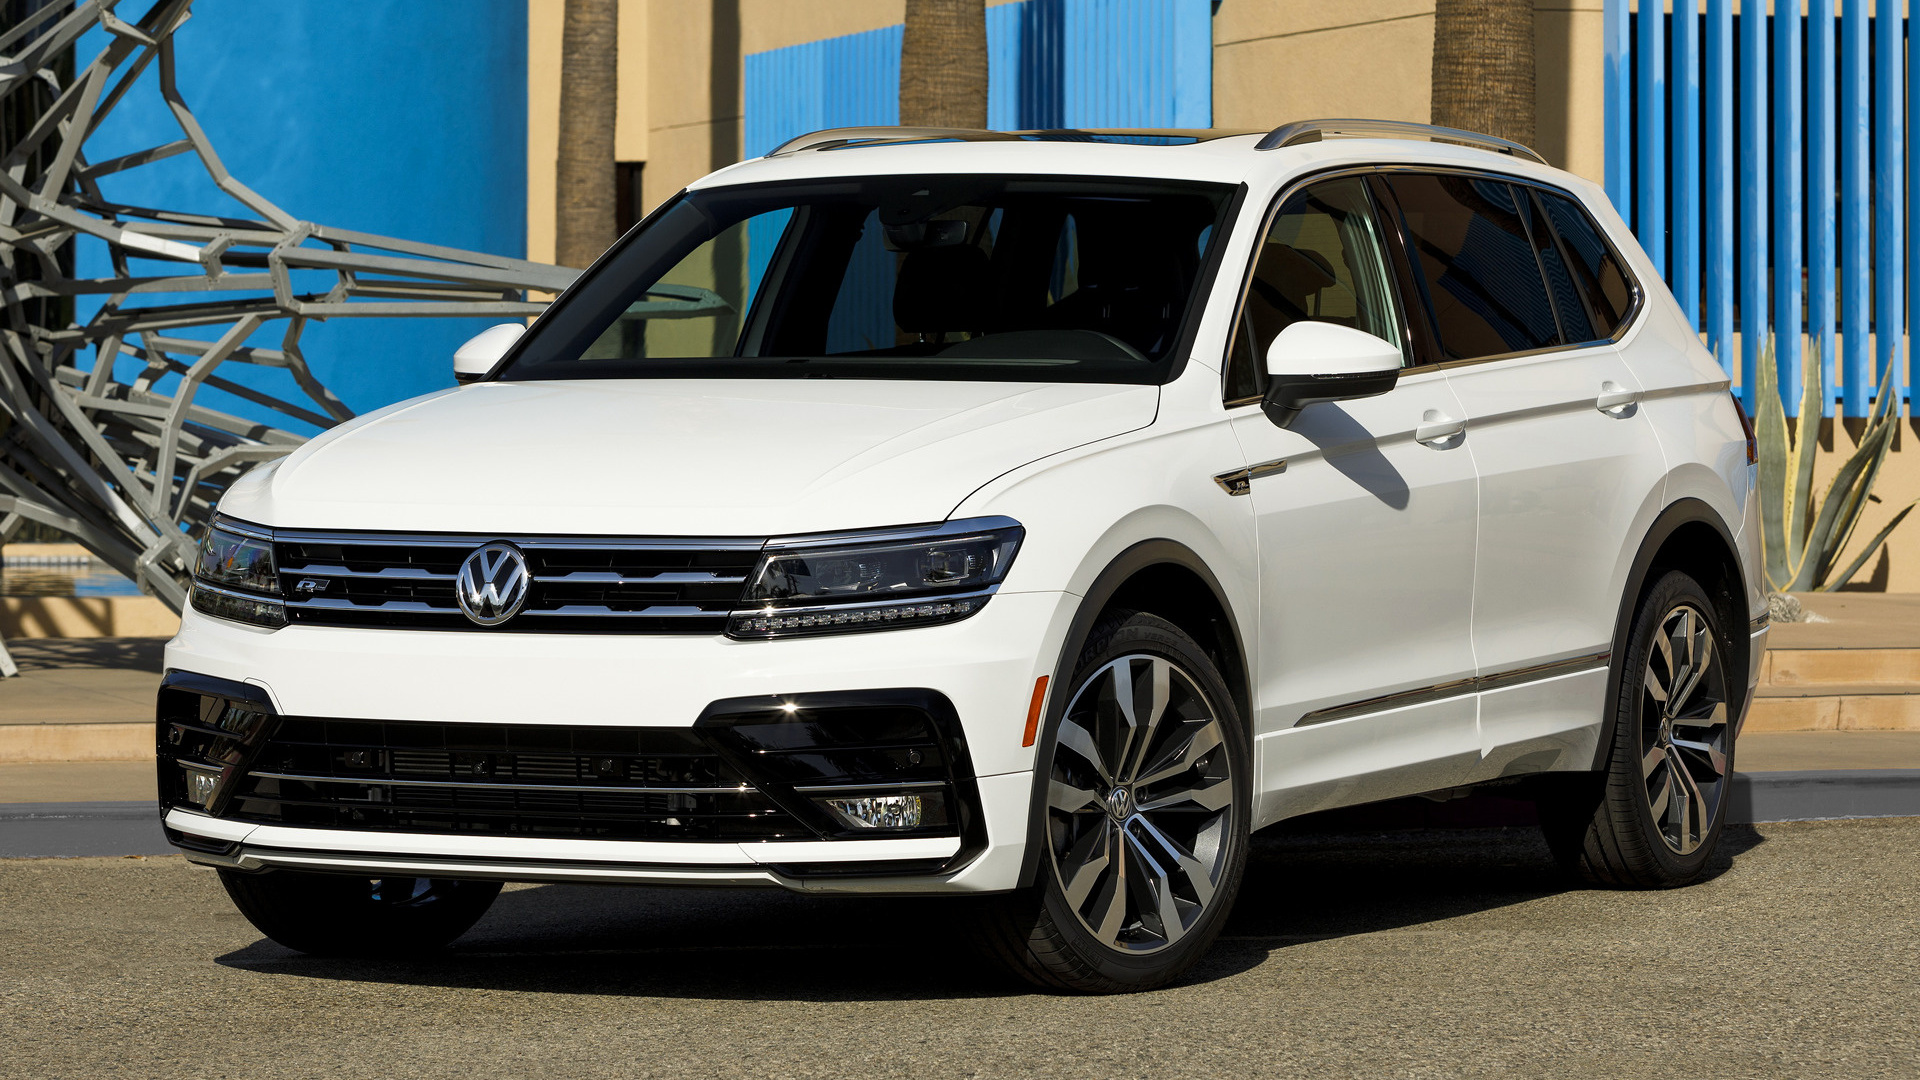 2018 volkswagen tiguan r line lwb us wallpapers and. Black Bedroom Furniture Sets. Home Design Ideas